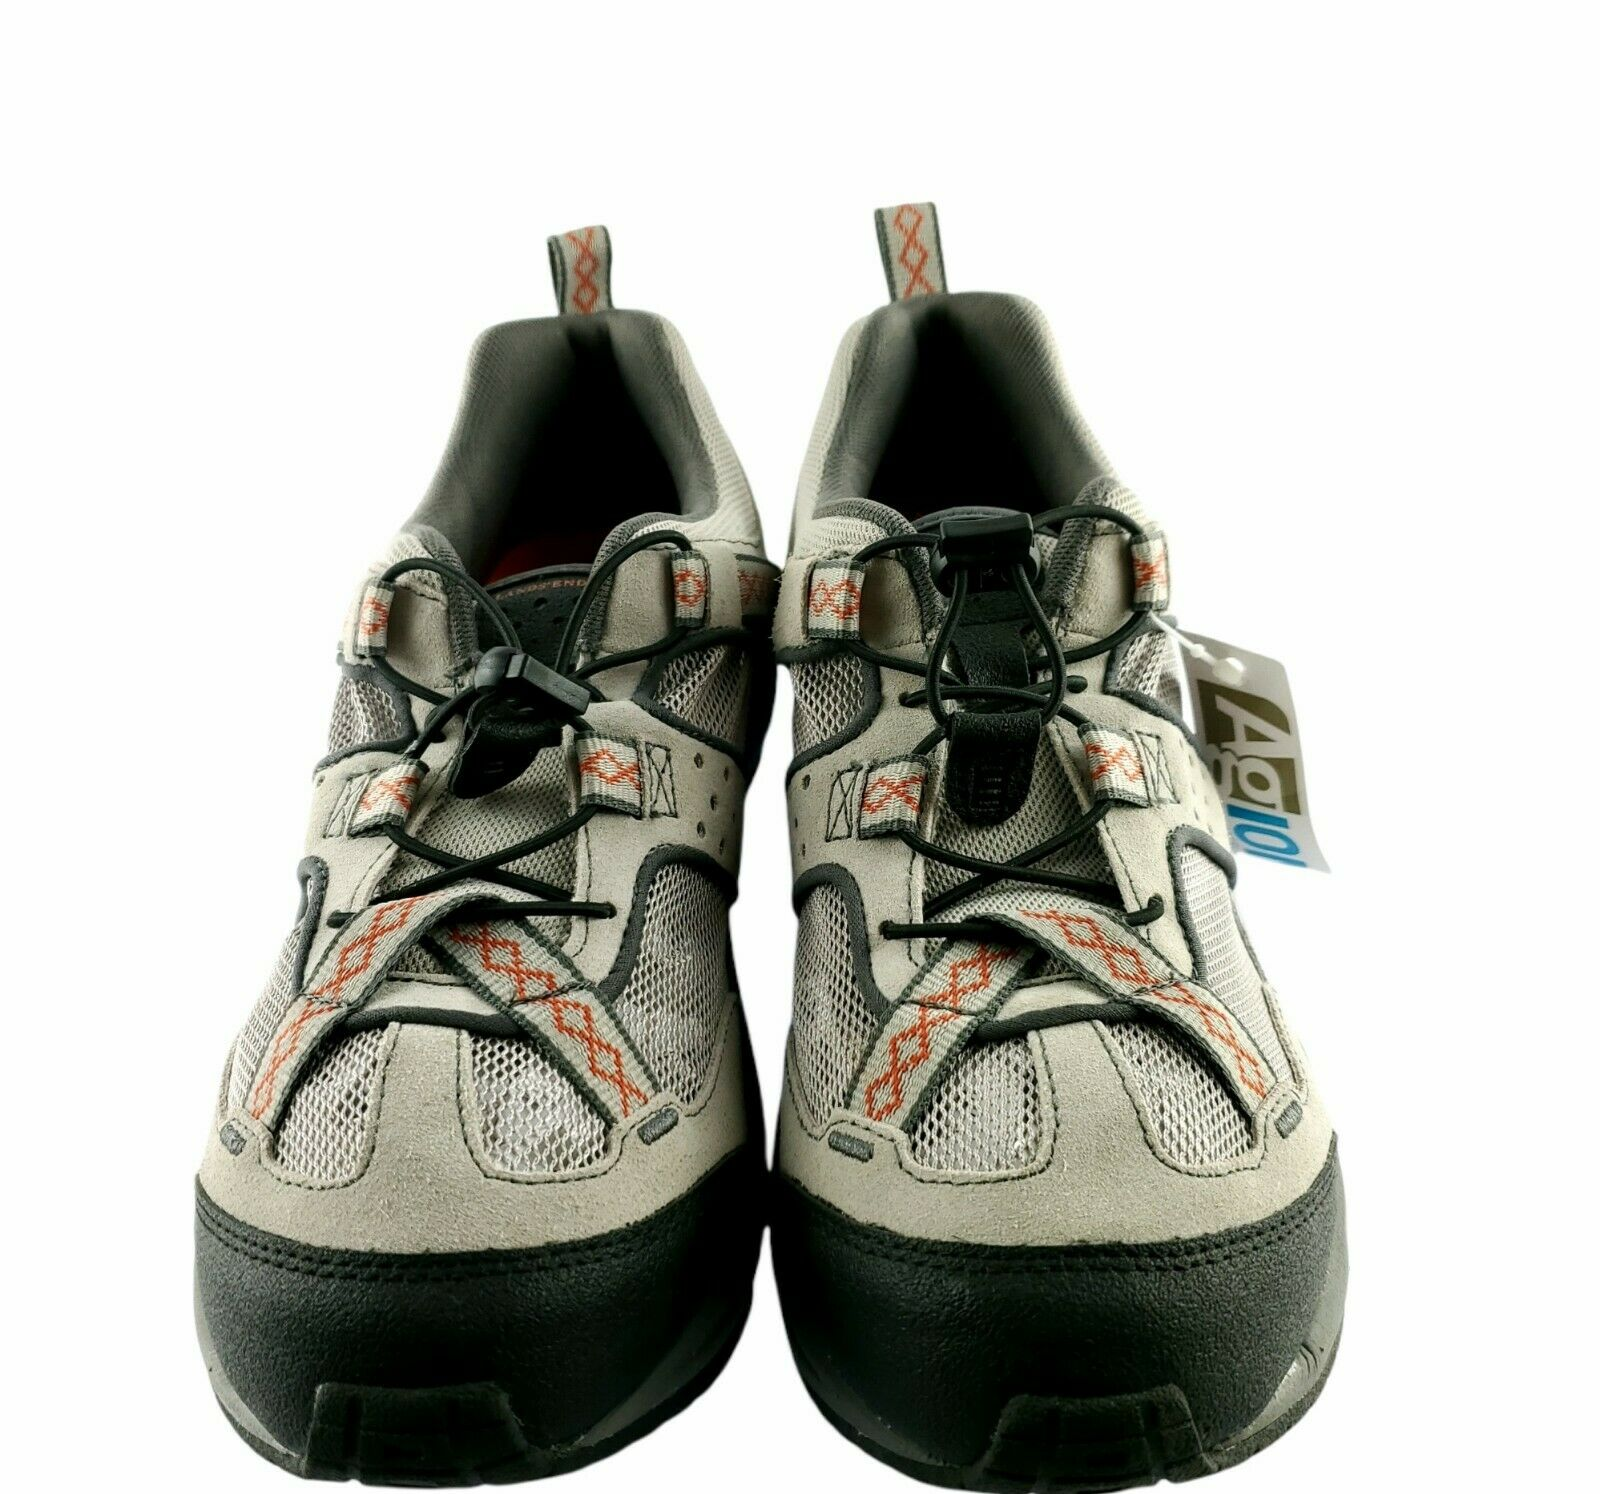 Agion Land send Anti Microbial Women Outdoors Comfortable Sandals USA Seller